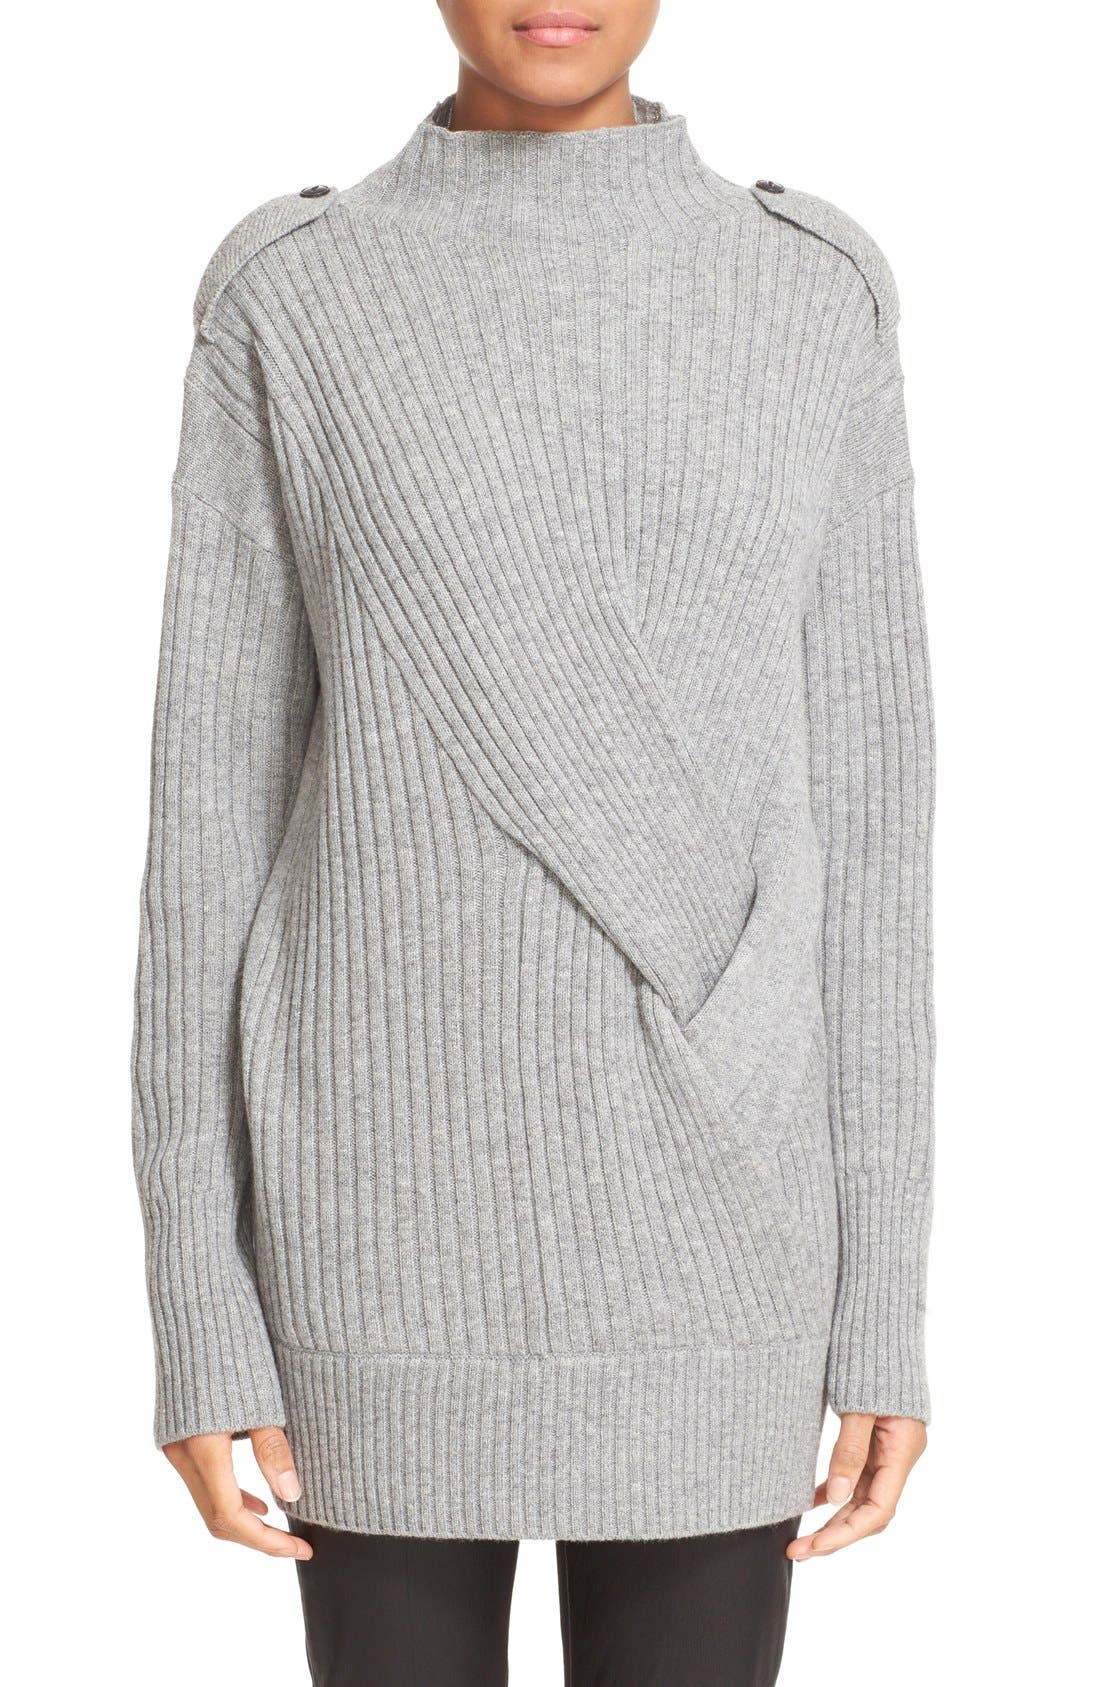 Main Image - rag & bone 'Dale' Merino Wool Turtleneck Sweater